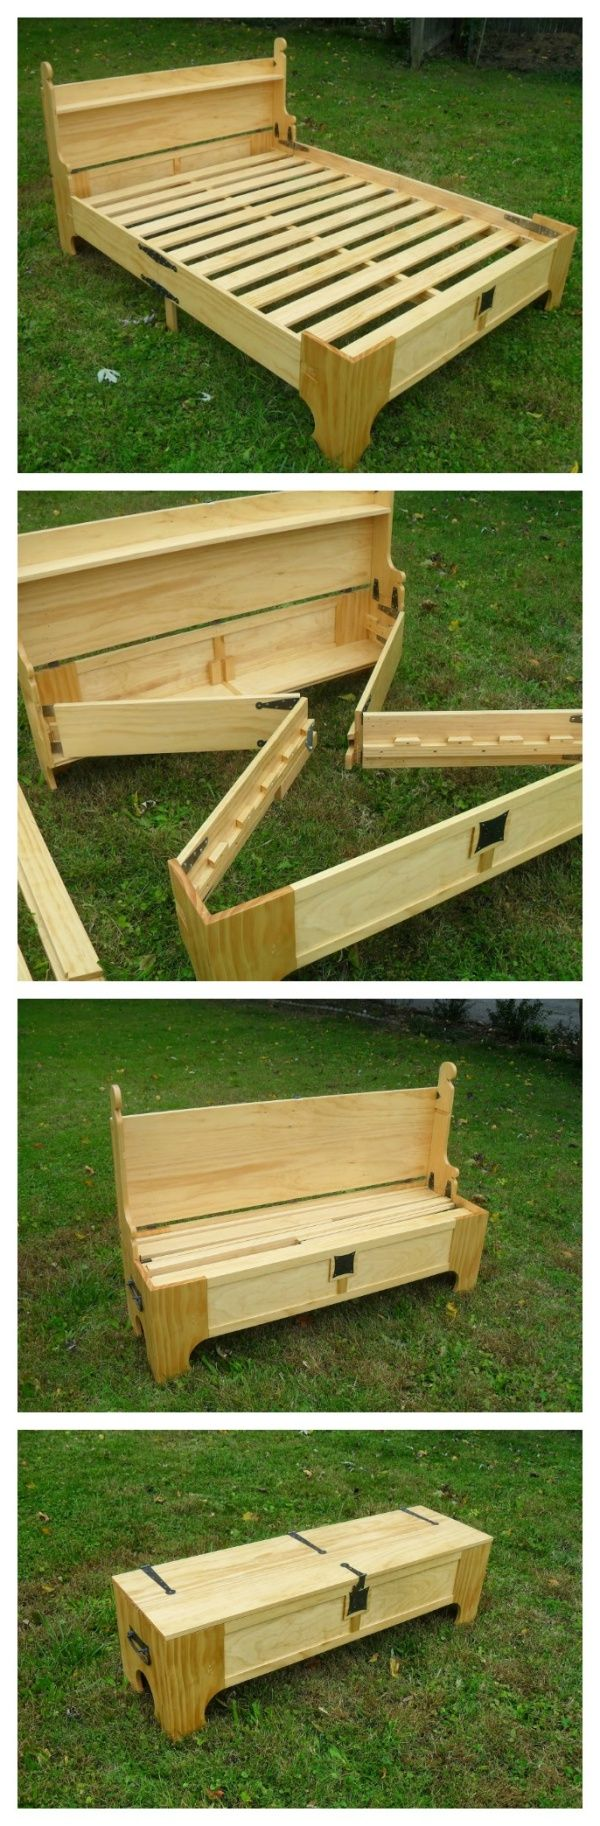 Photo of Amazing Custom Bed Folds Into a Chest For Easy Storage